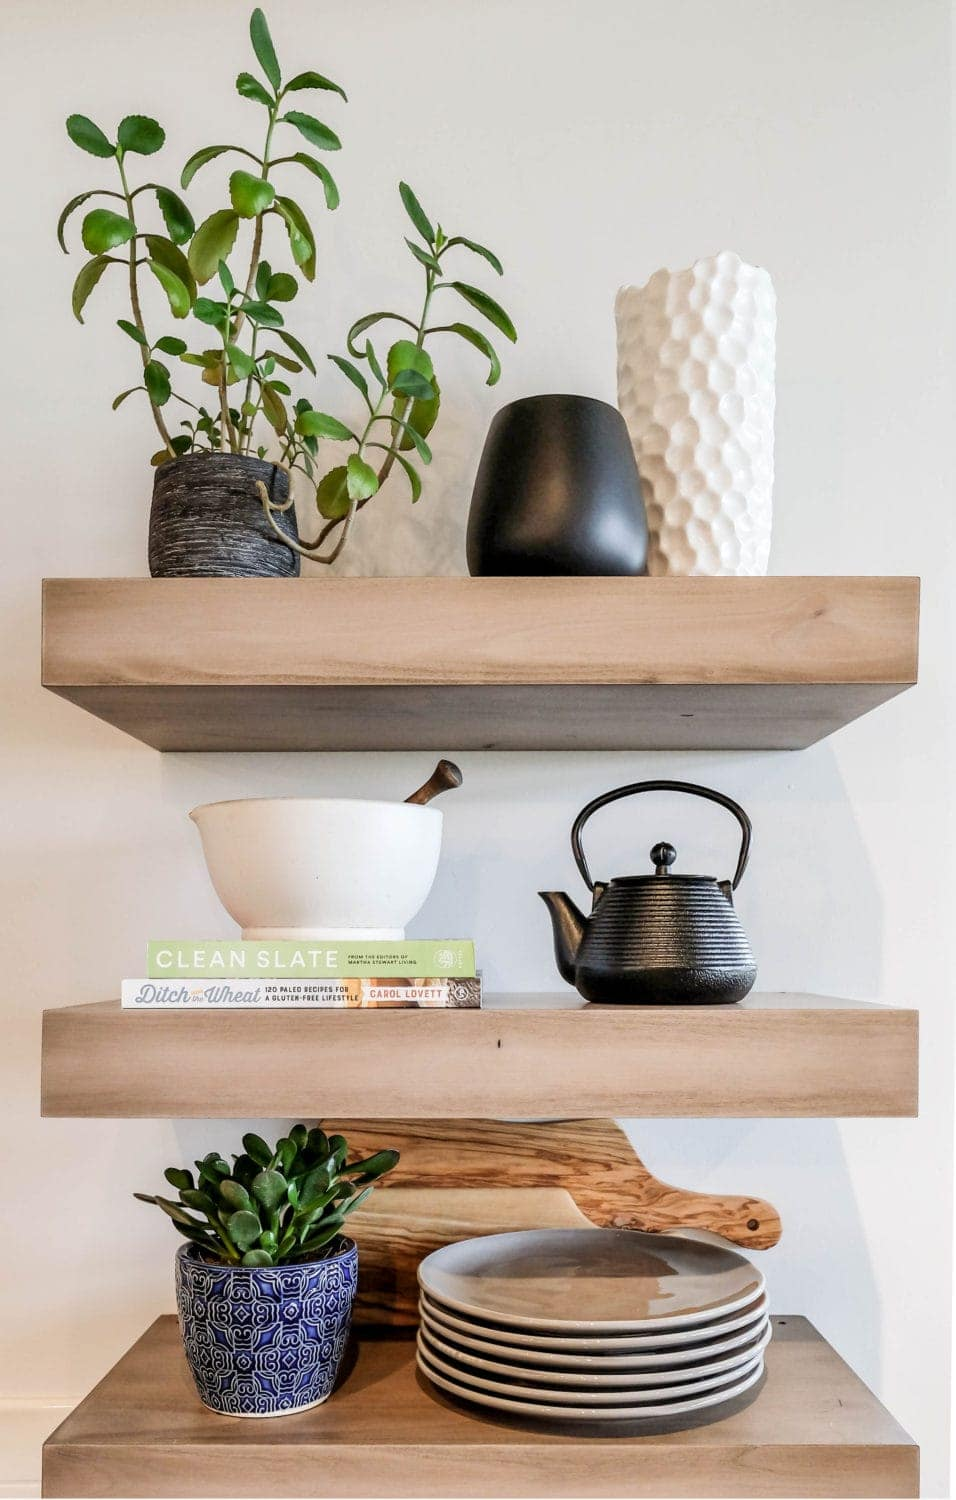 kitchen shelves styled with potted greenery, plates, a kettle, and books